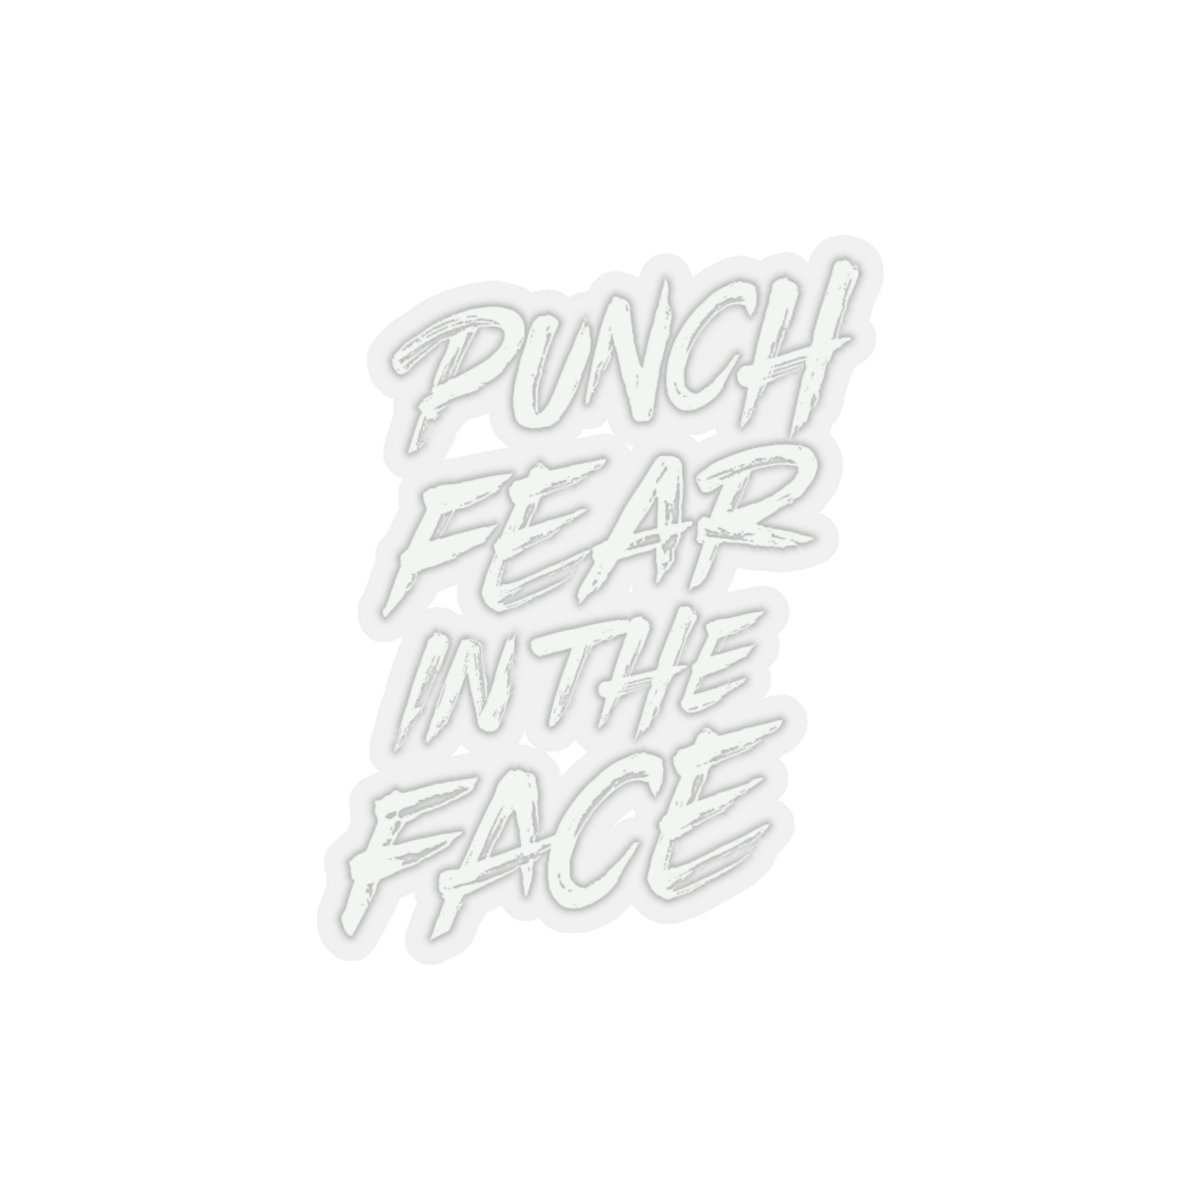 "Punch Fear in the Face - Kiss-Cut Stickers Stickers Printify 6x6"" Transparent"